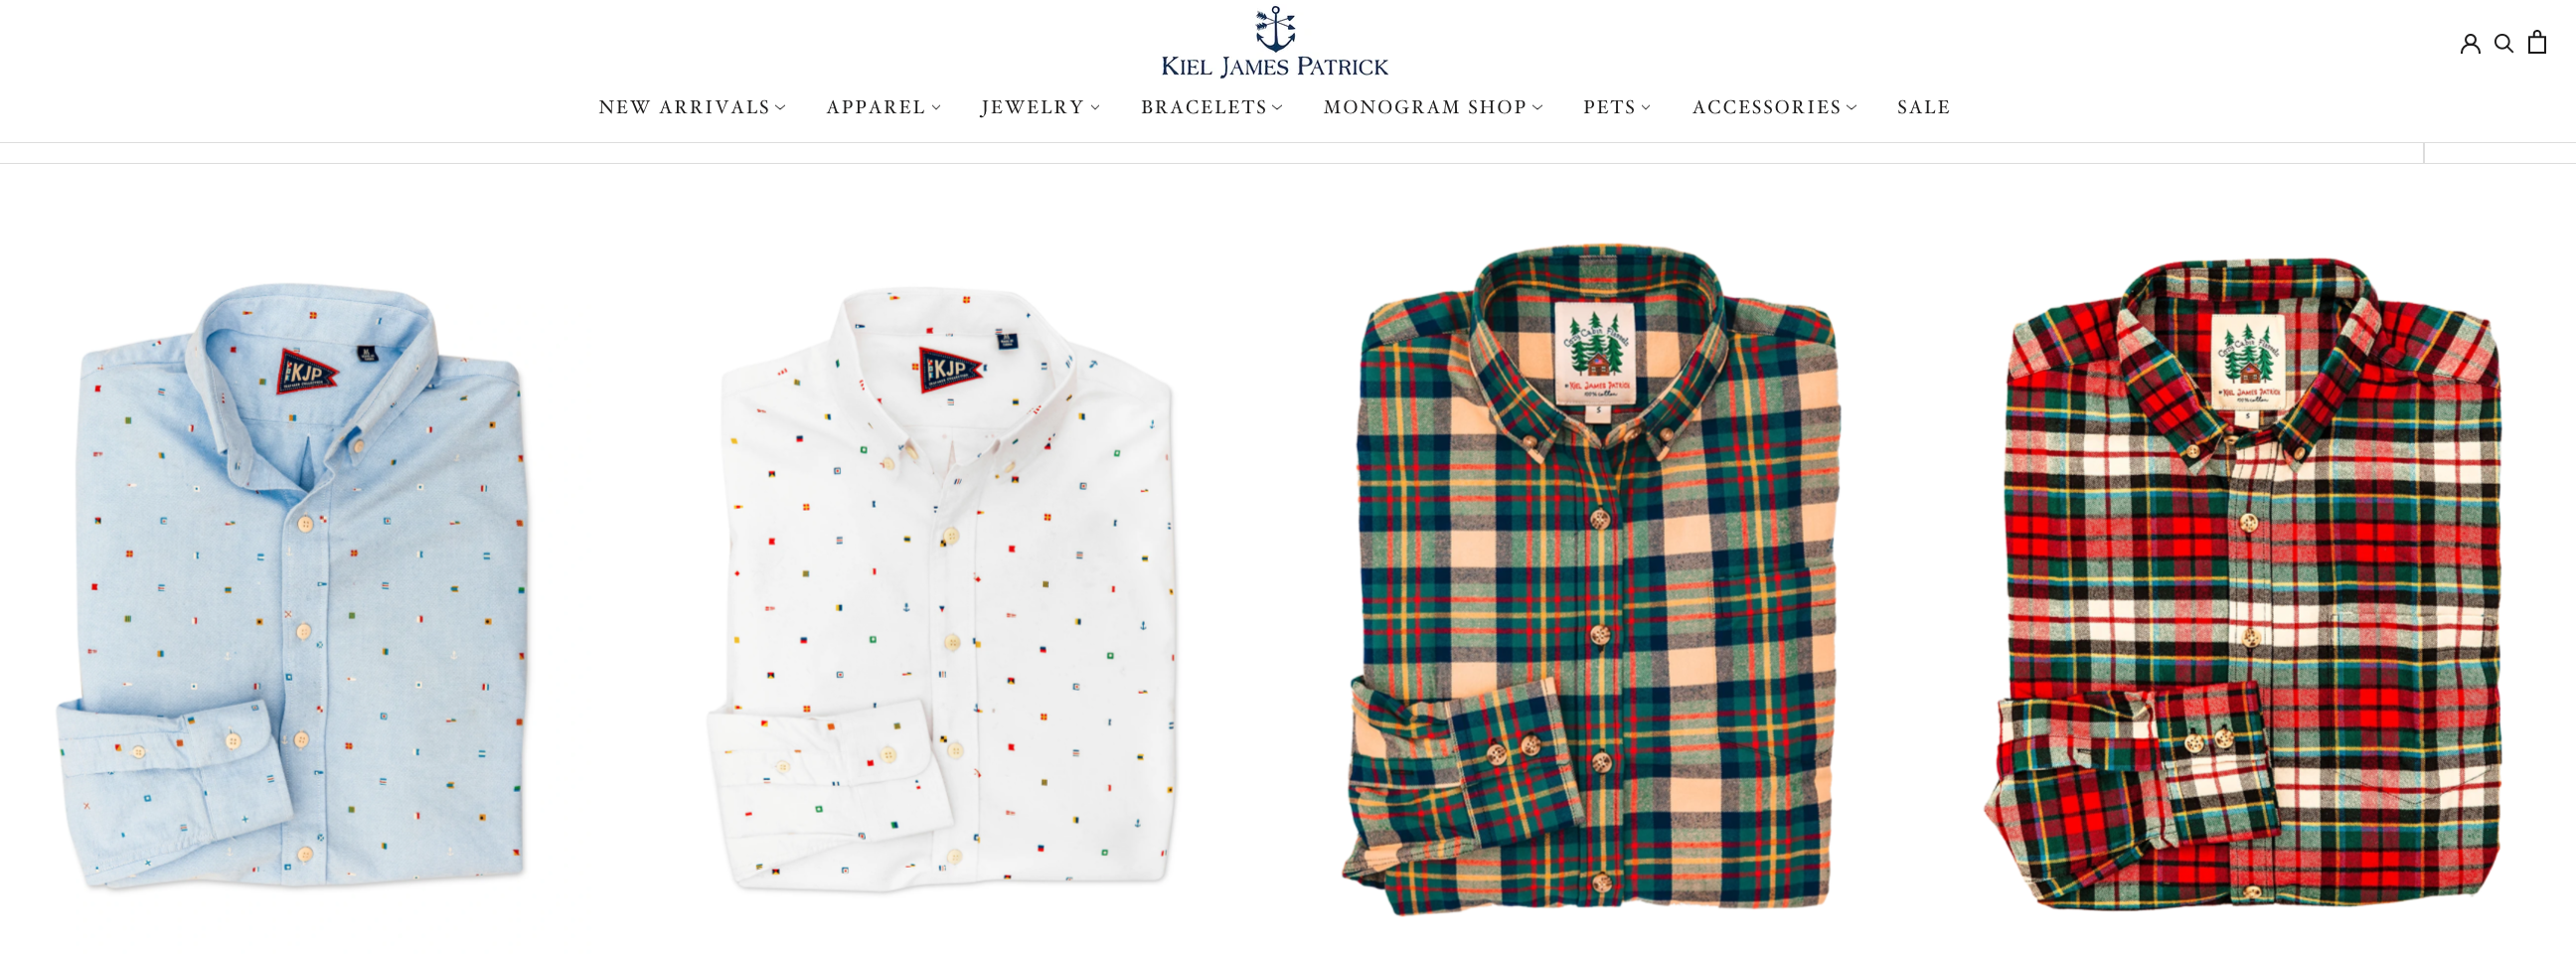 A row of nice men's longsleeve shirts